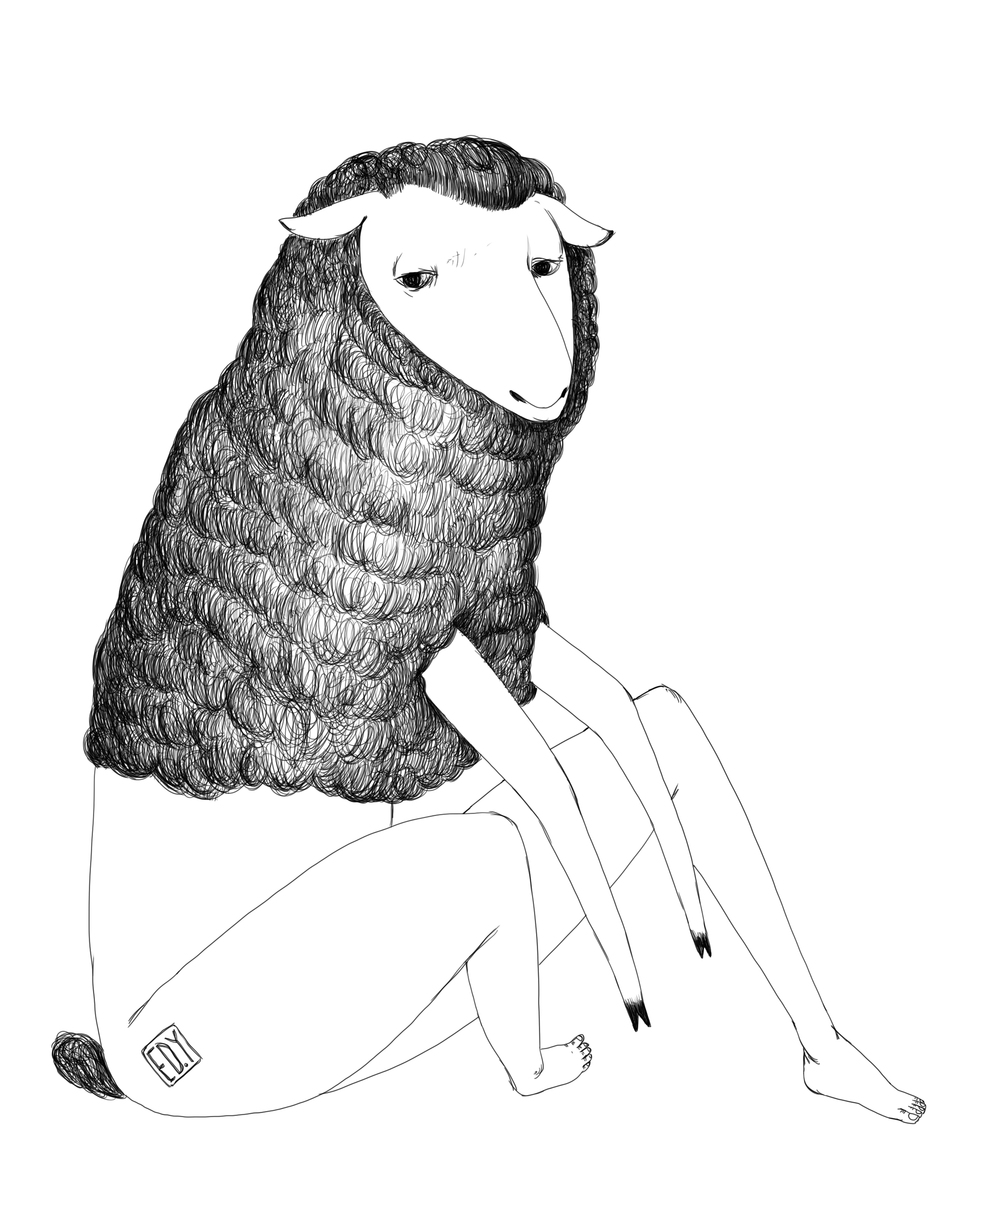 blacksheep01_edy.JPG